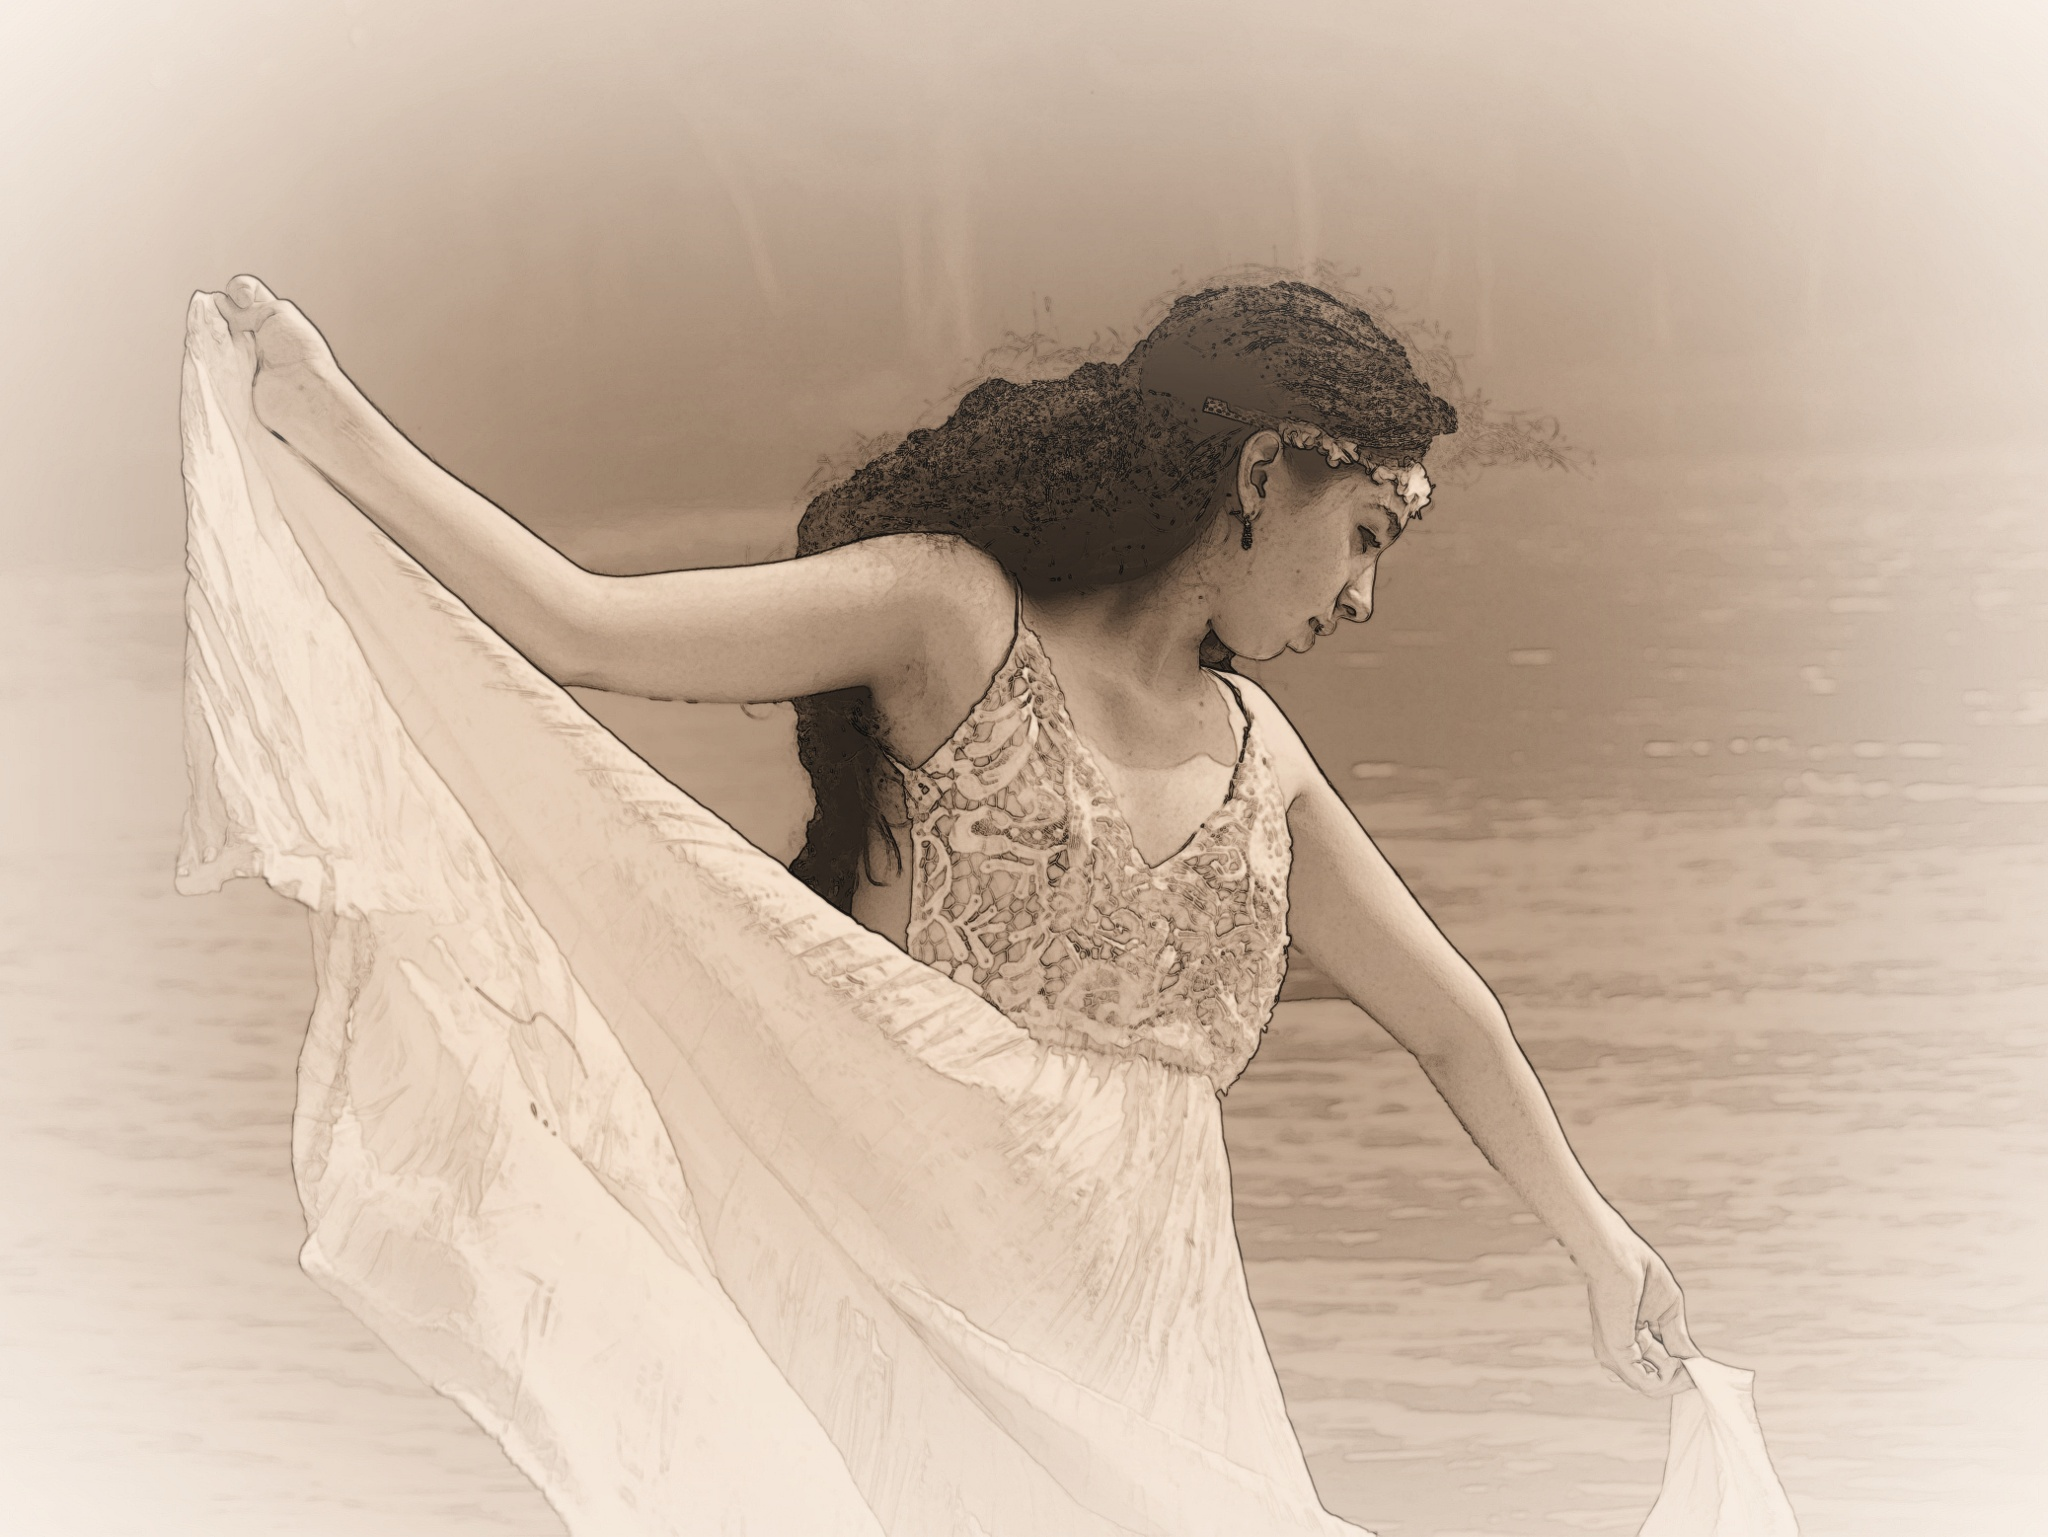 Dancing by the lake (sepia)  by Frank J Garcia